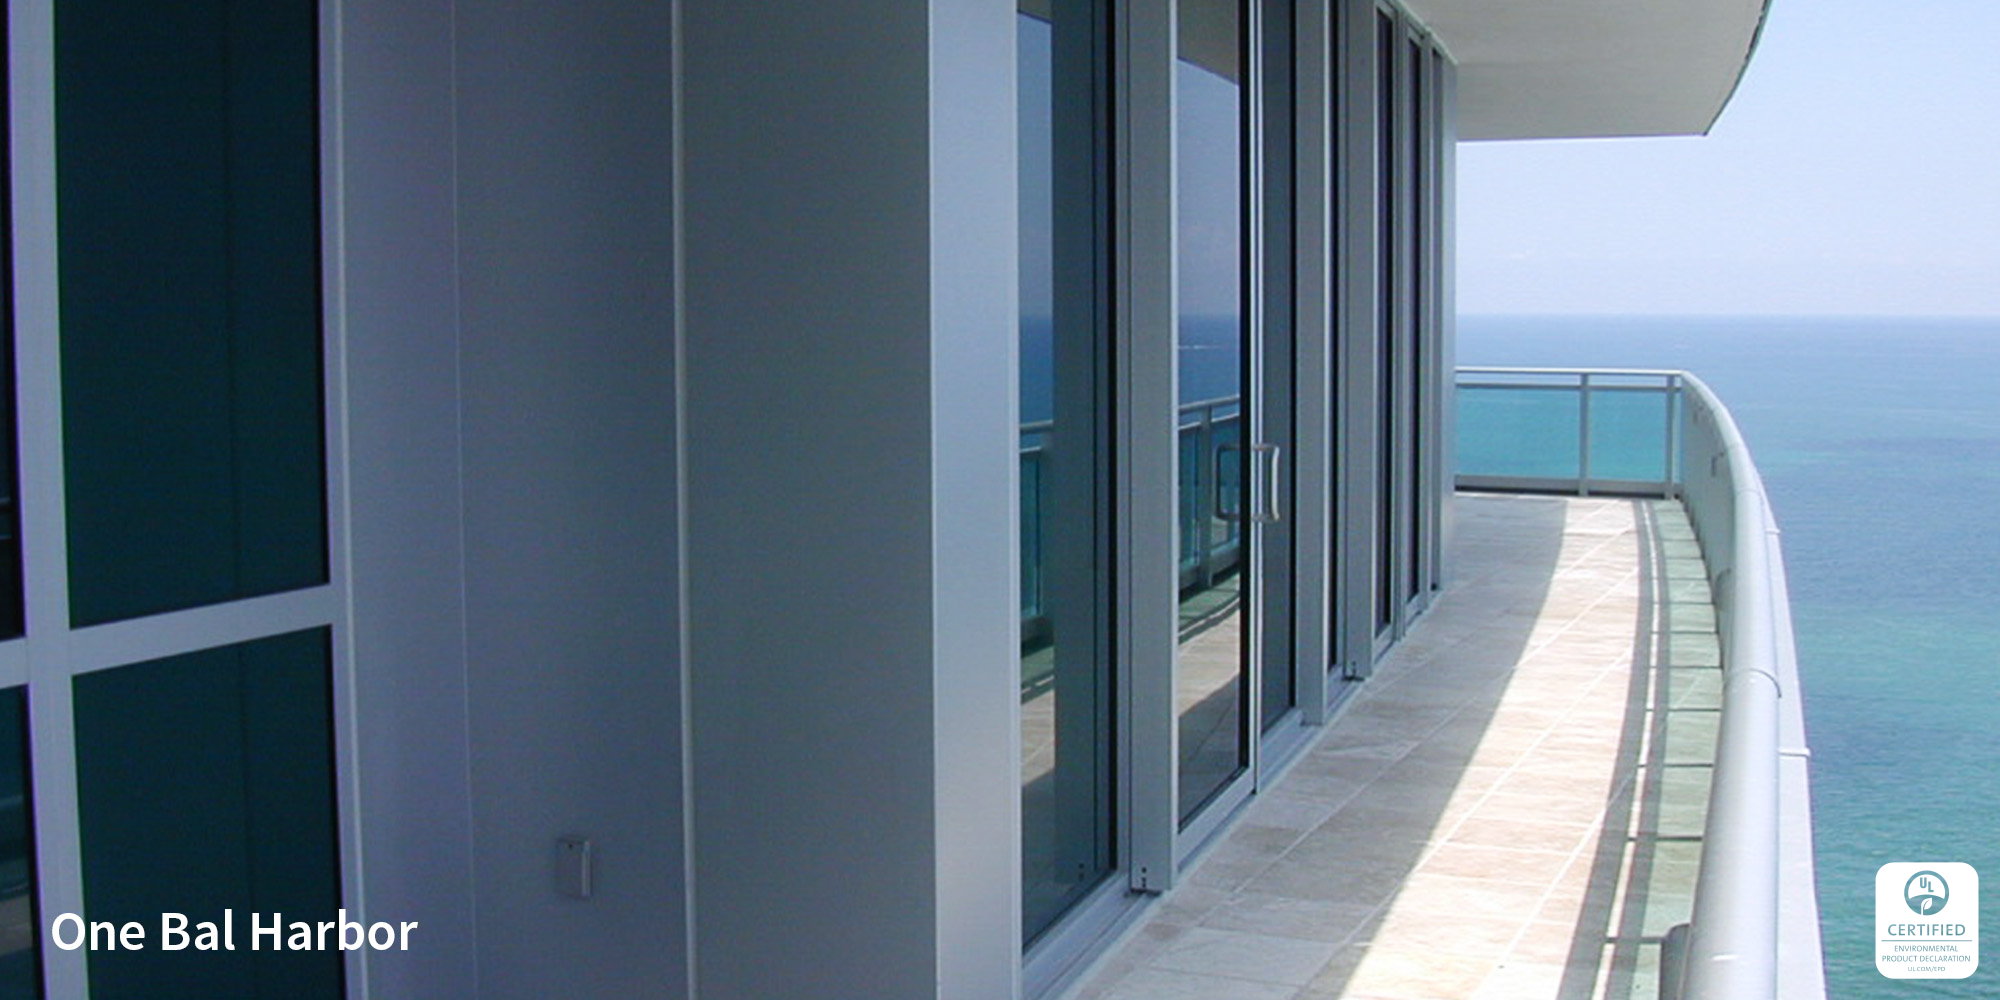 Design Balcony Door commercial balcony doors ykk ap fenestration systems sliding terrace doors